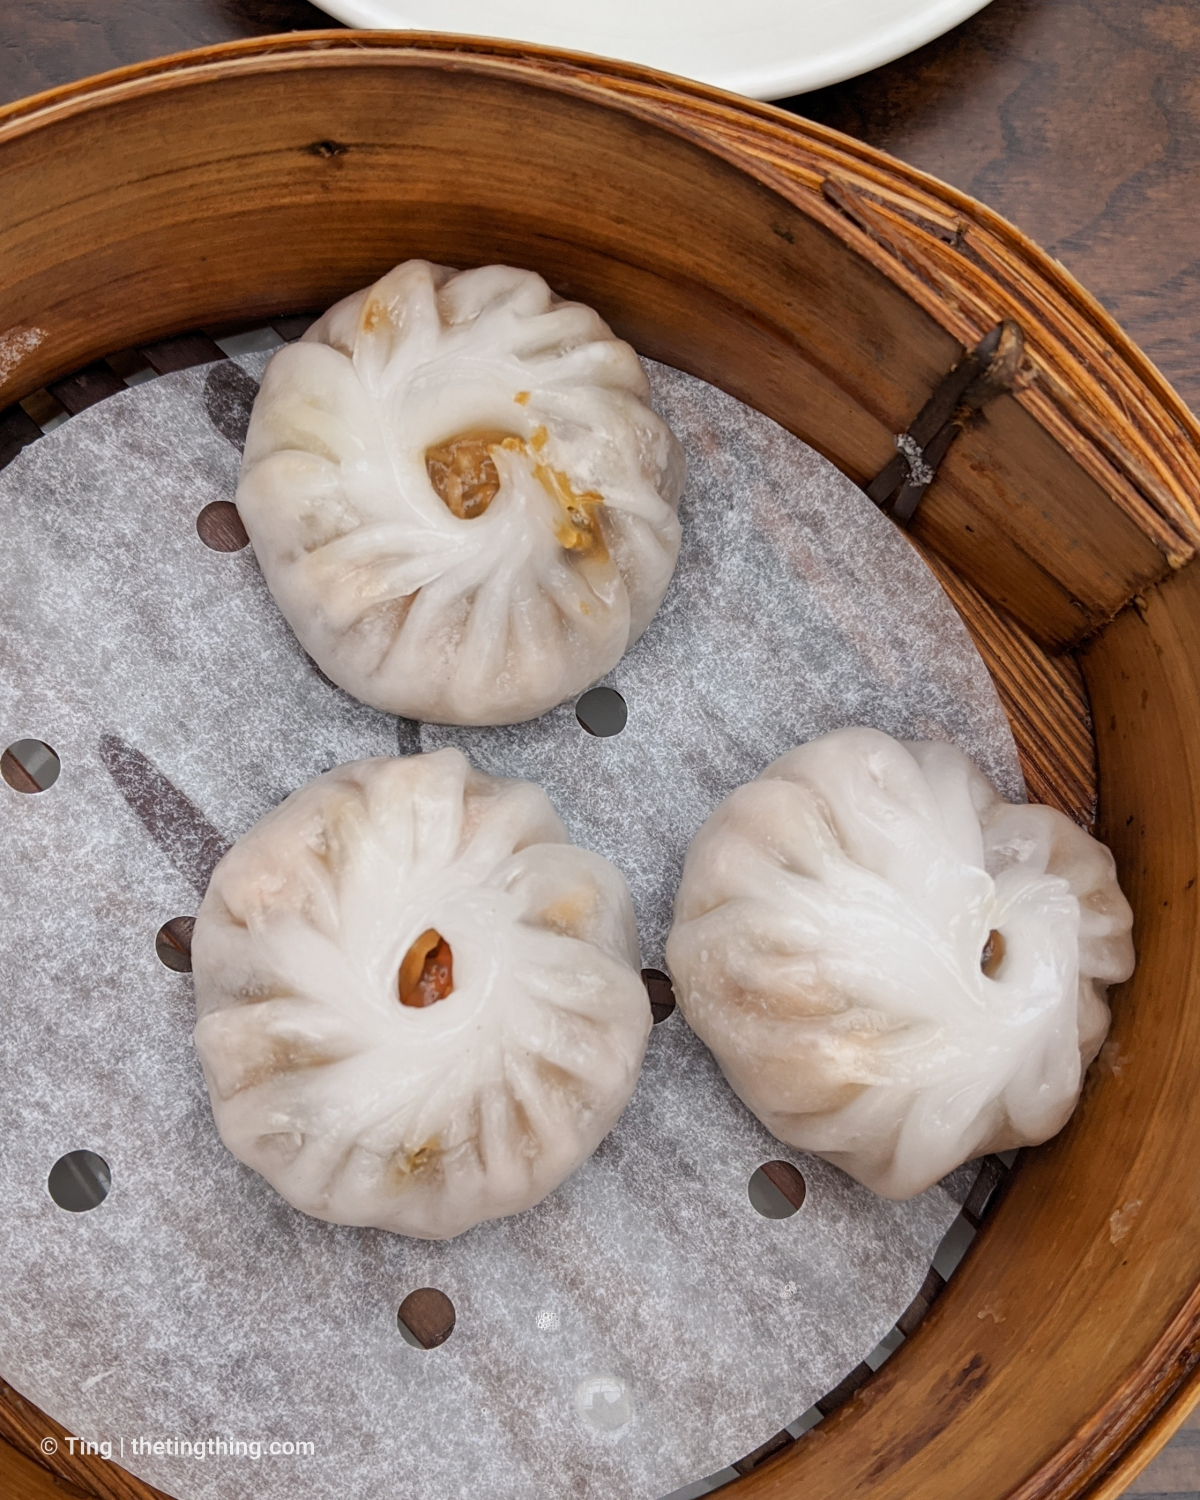 Chung Ying steamed vegan dumplings